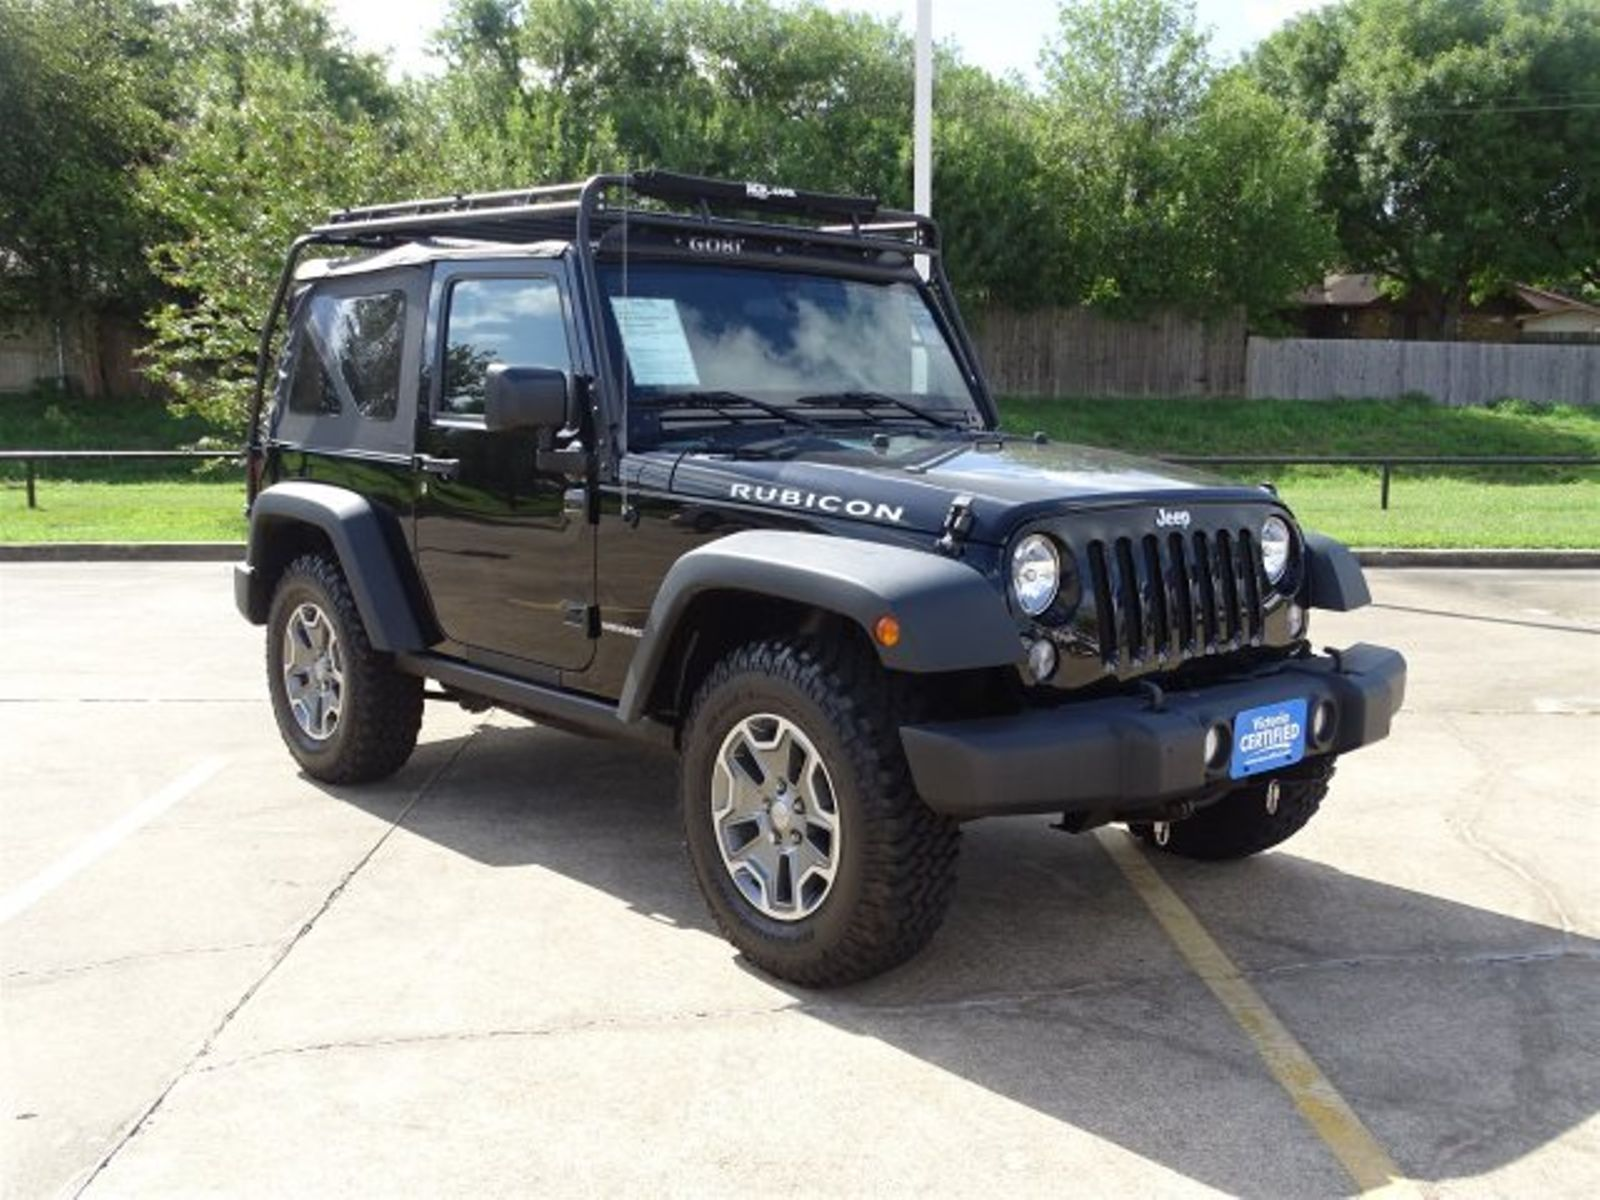 brendan expert sahara jeep test review unlimited drive rubicon wrangler mcaleer of